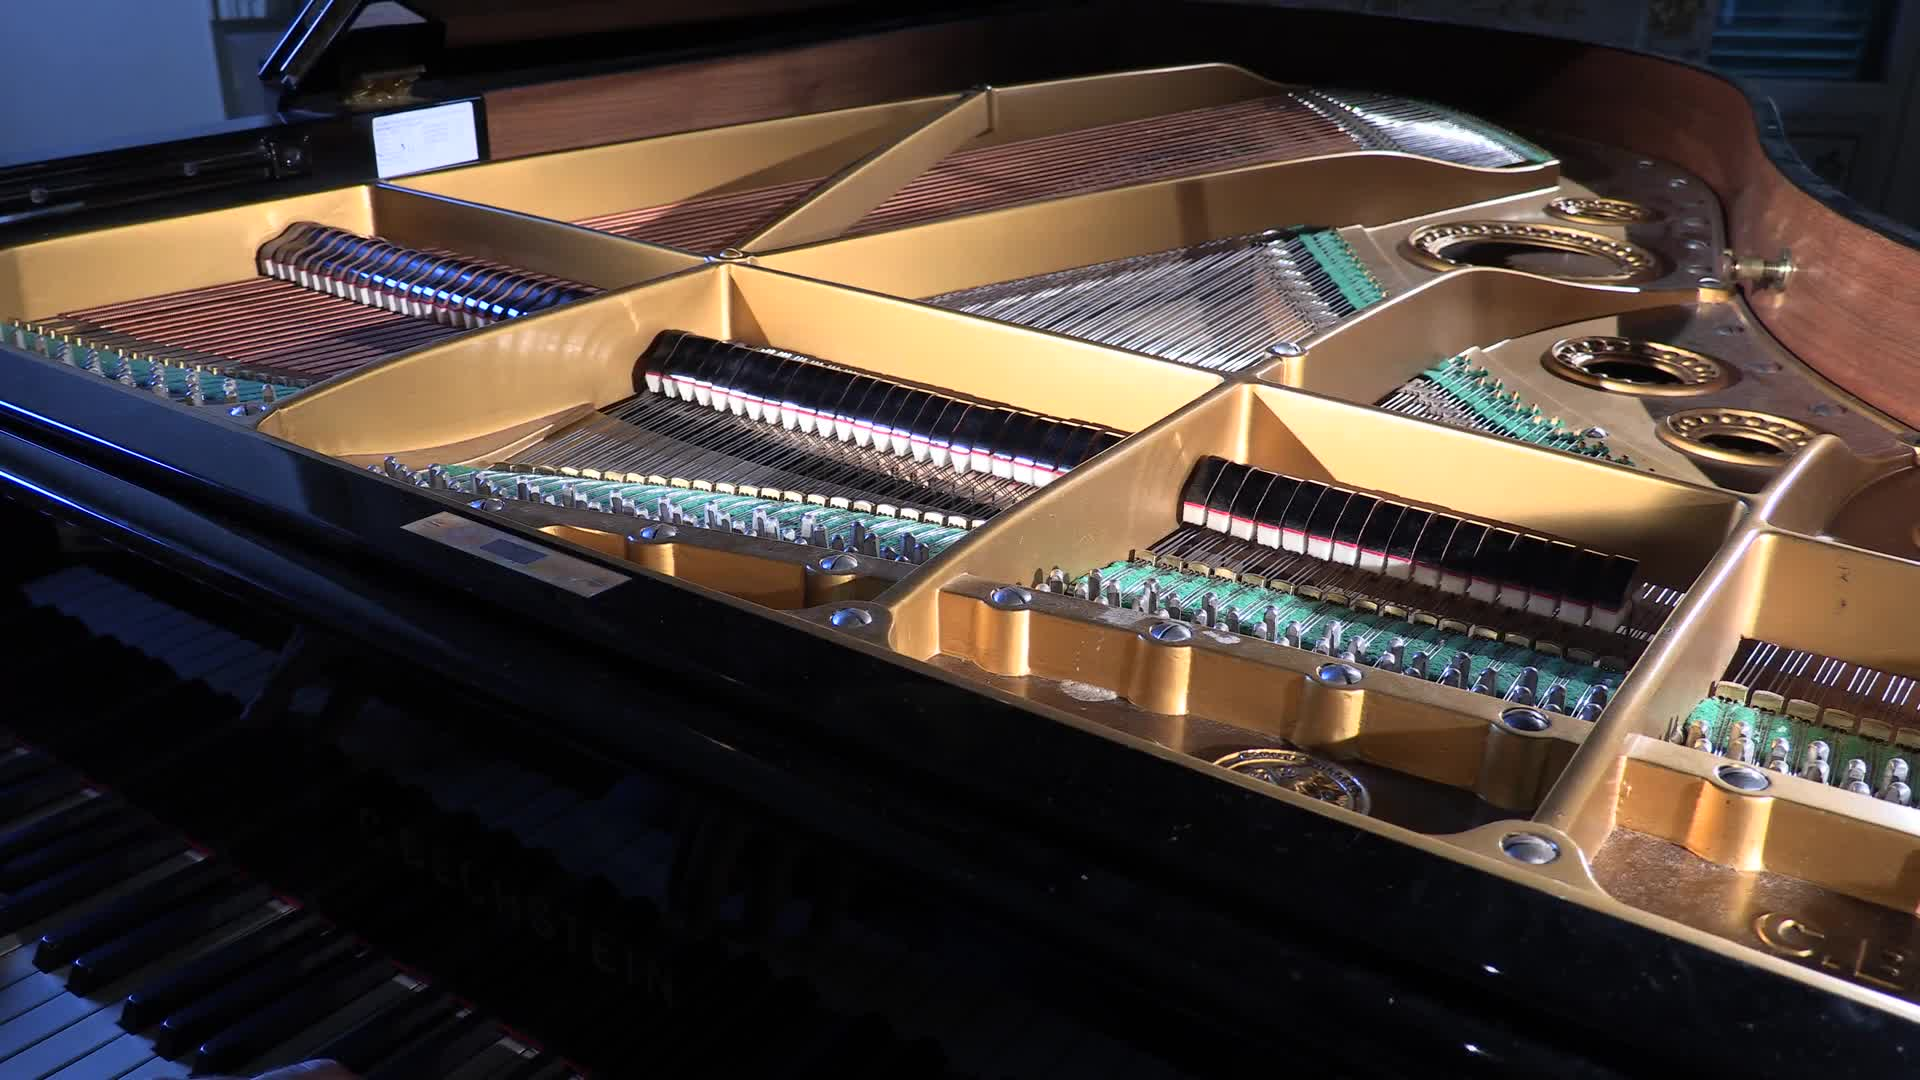 Piano wing music instrument piano keyboard